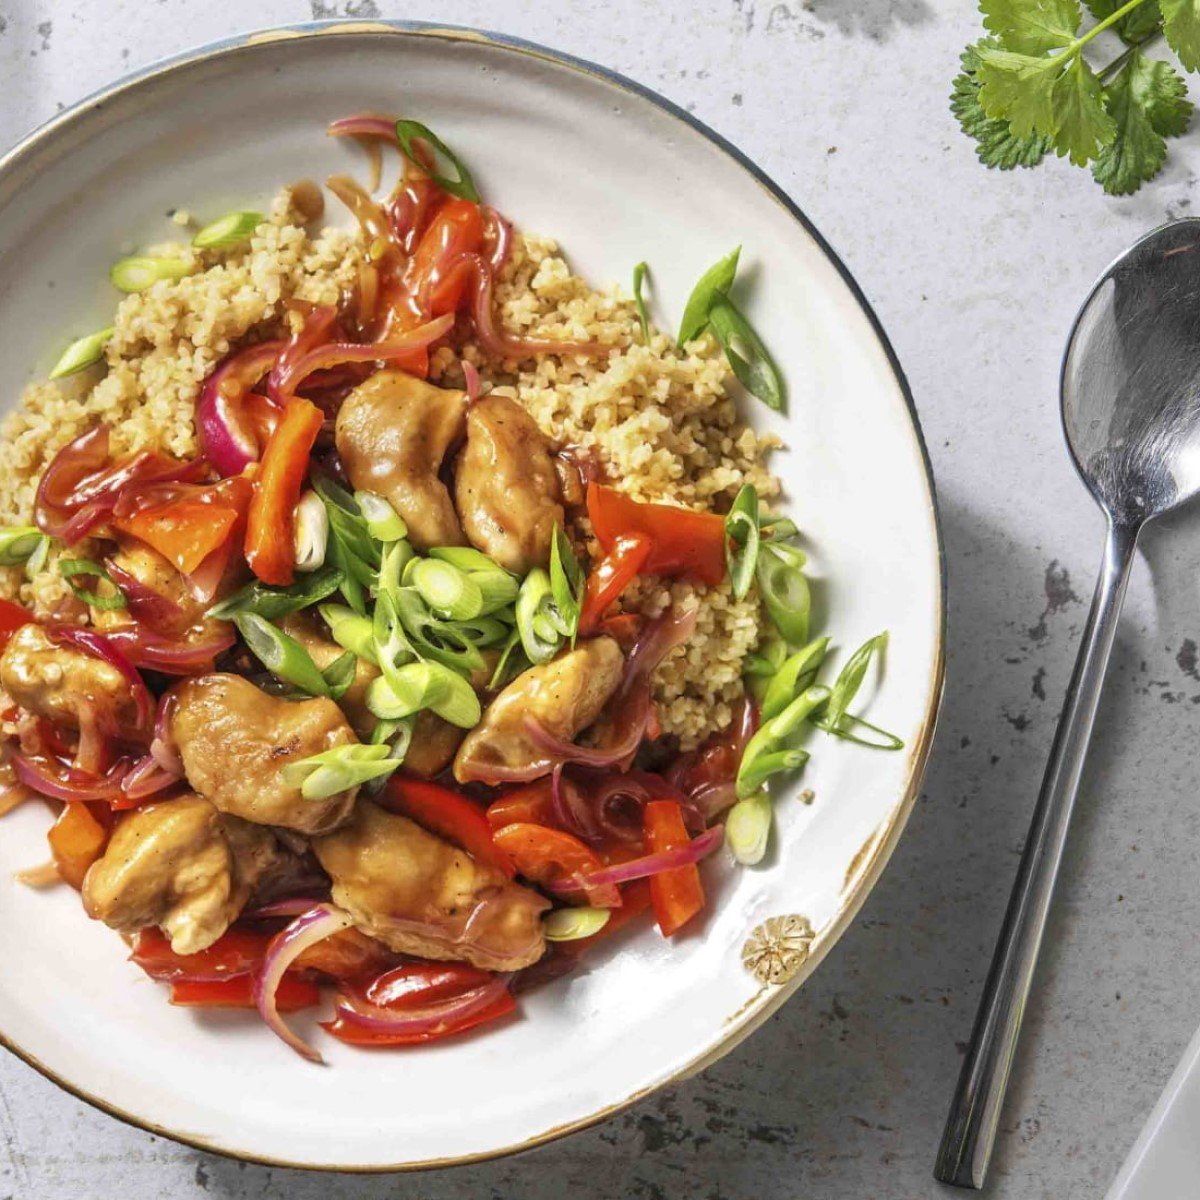 Sweet and Sour Style Chicken Recipe with Bulgur Wheat